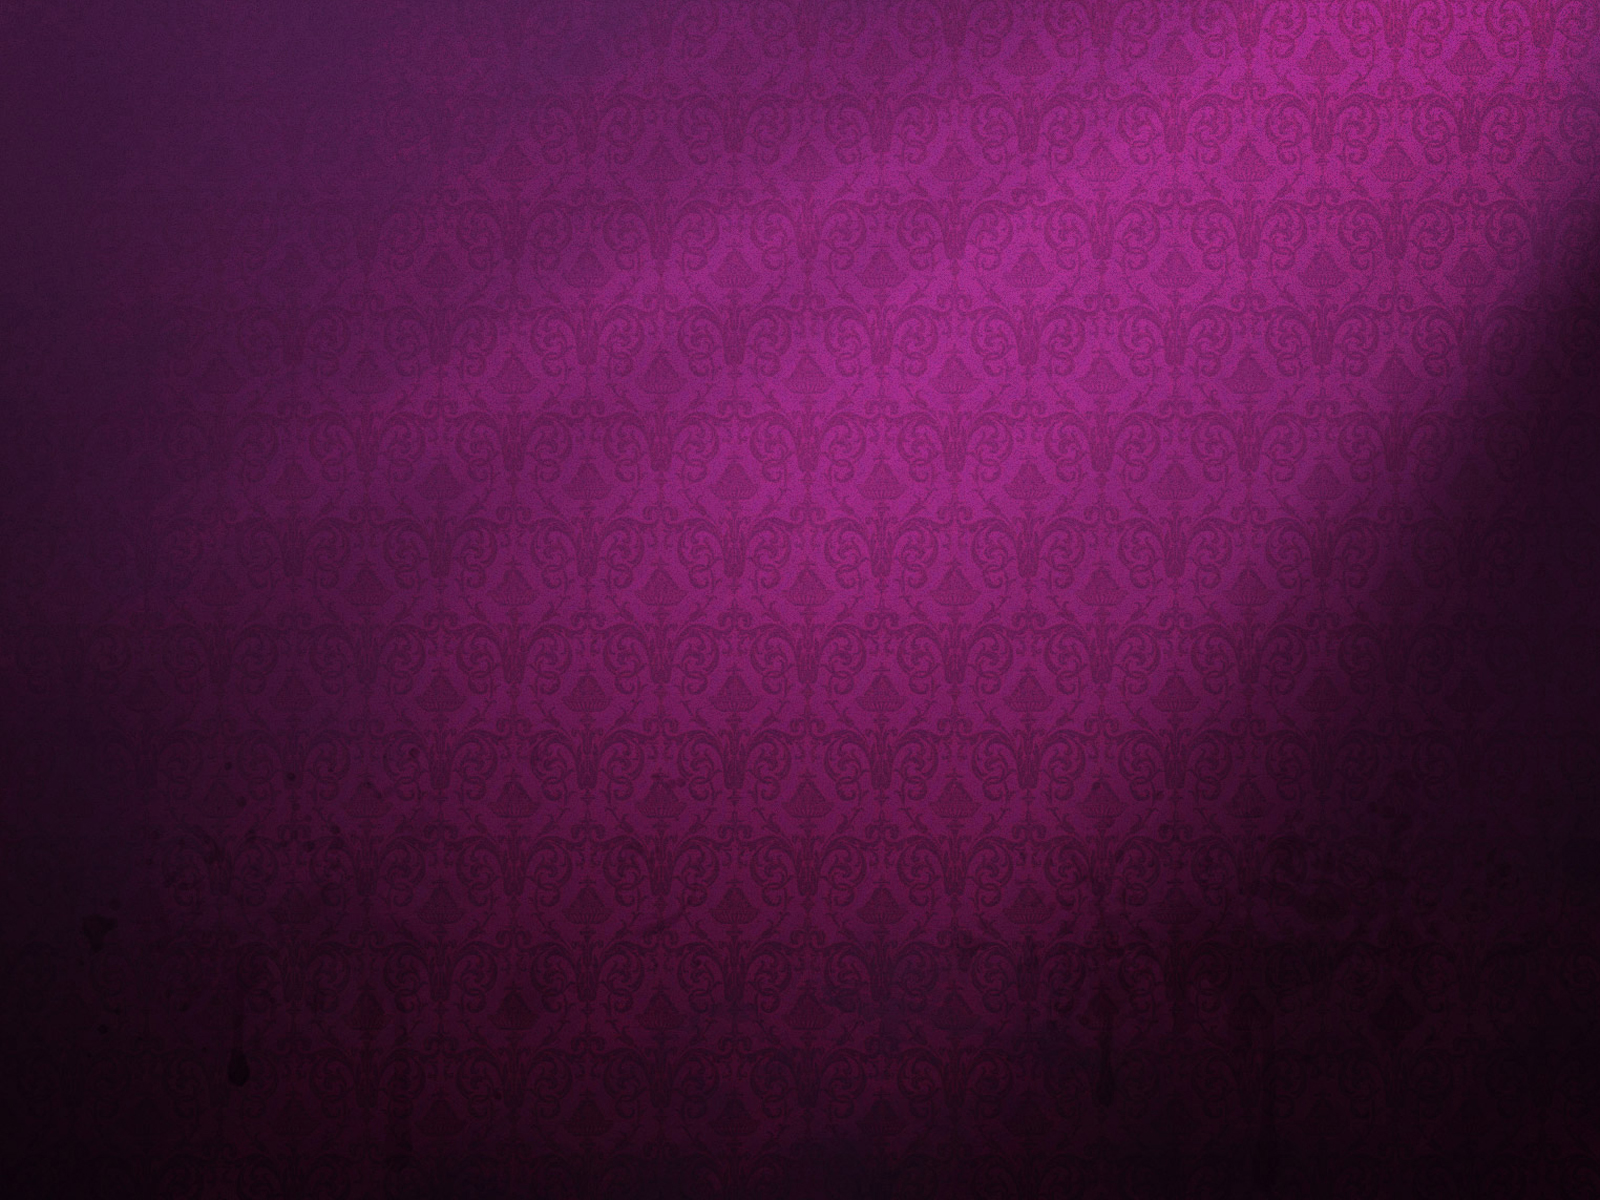 free pink and brown background